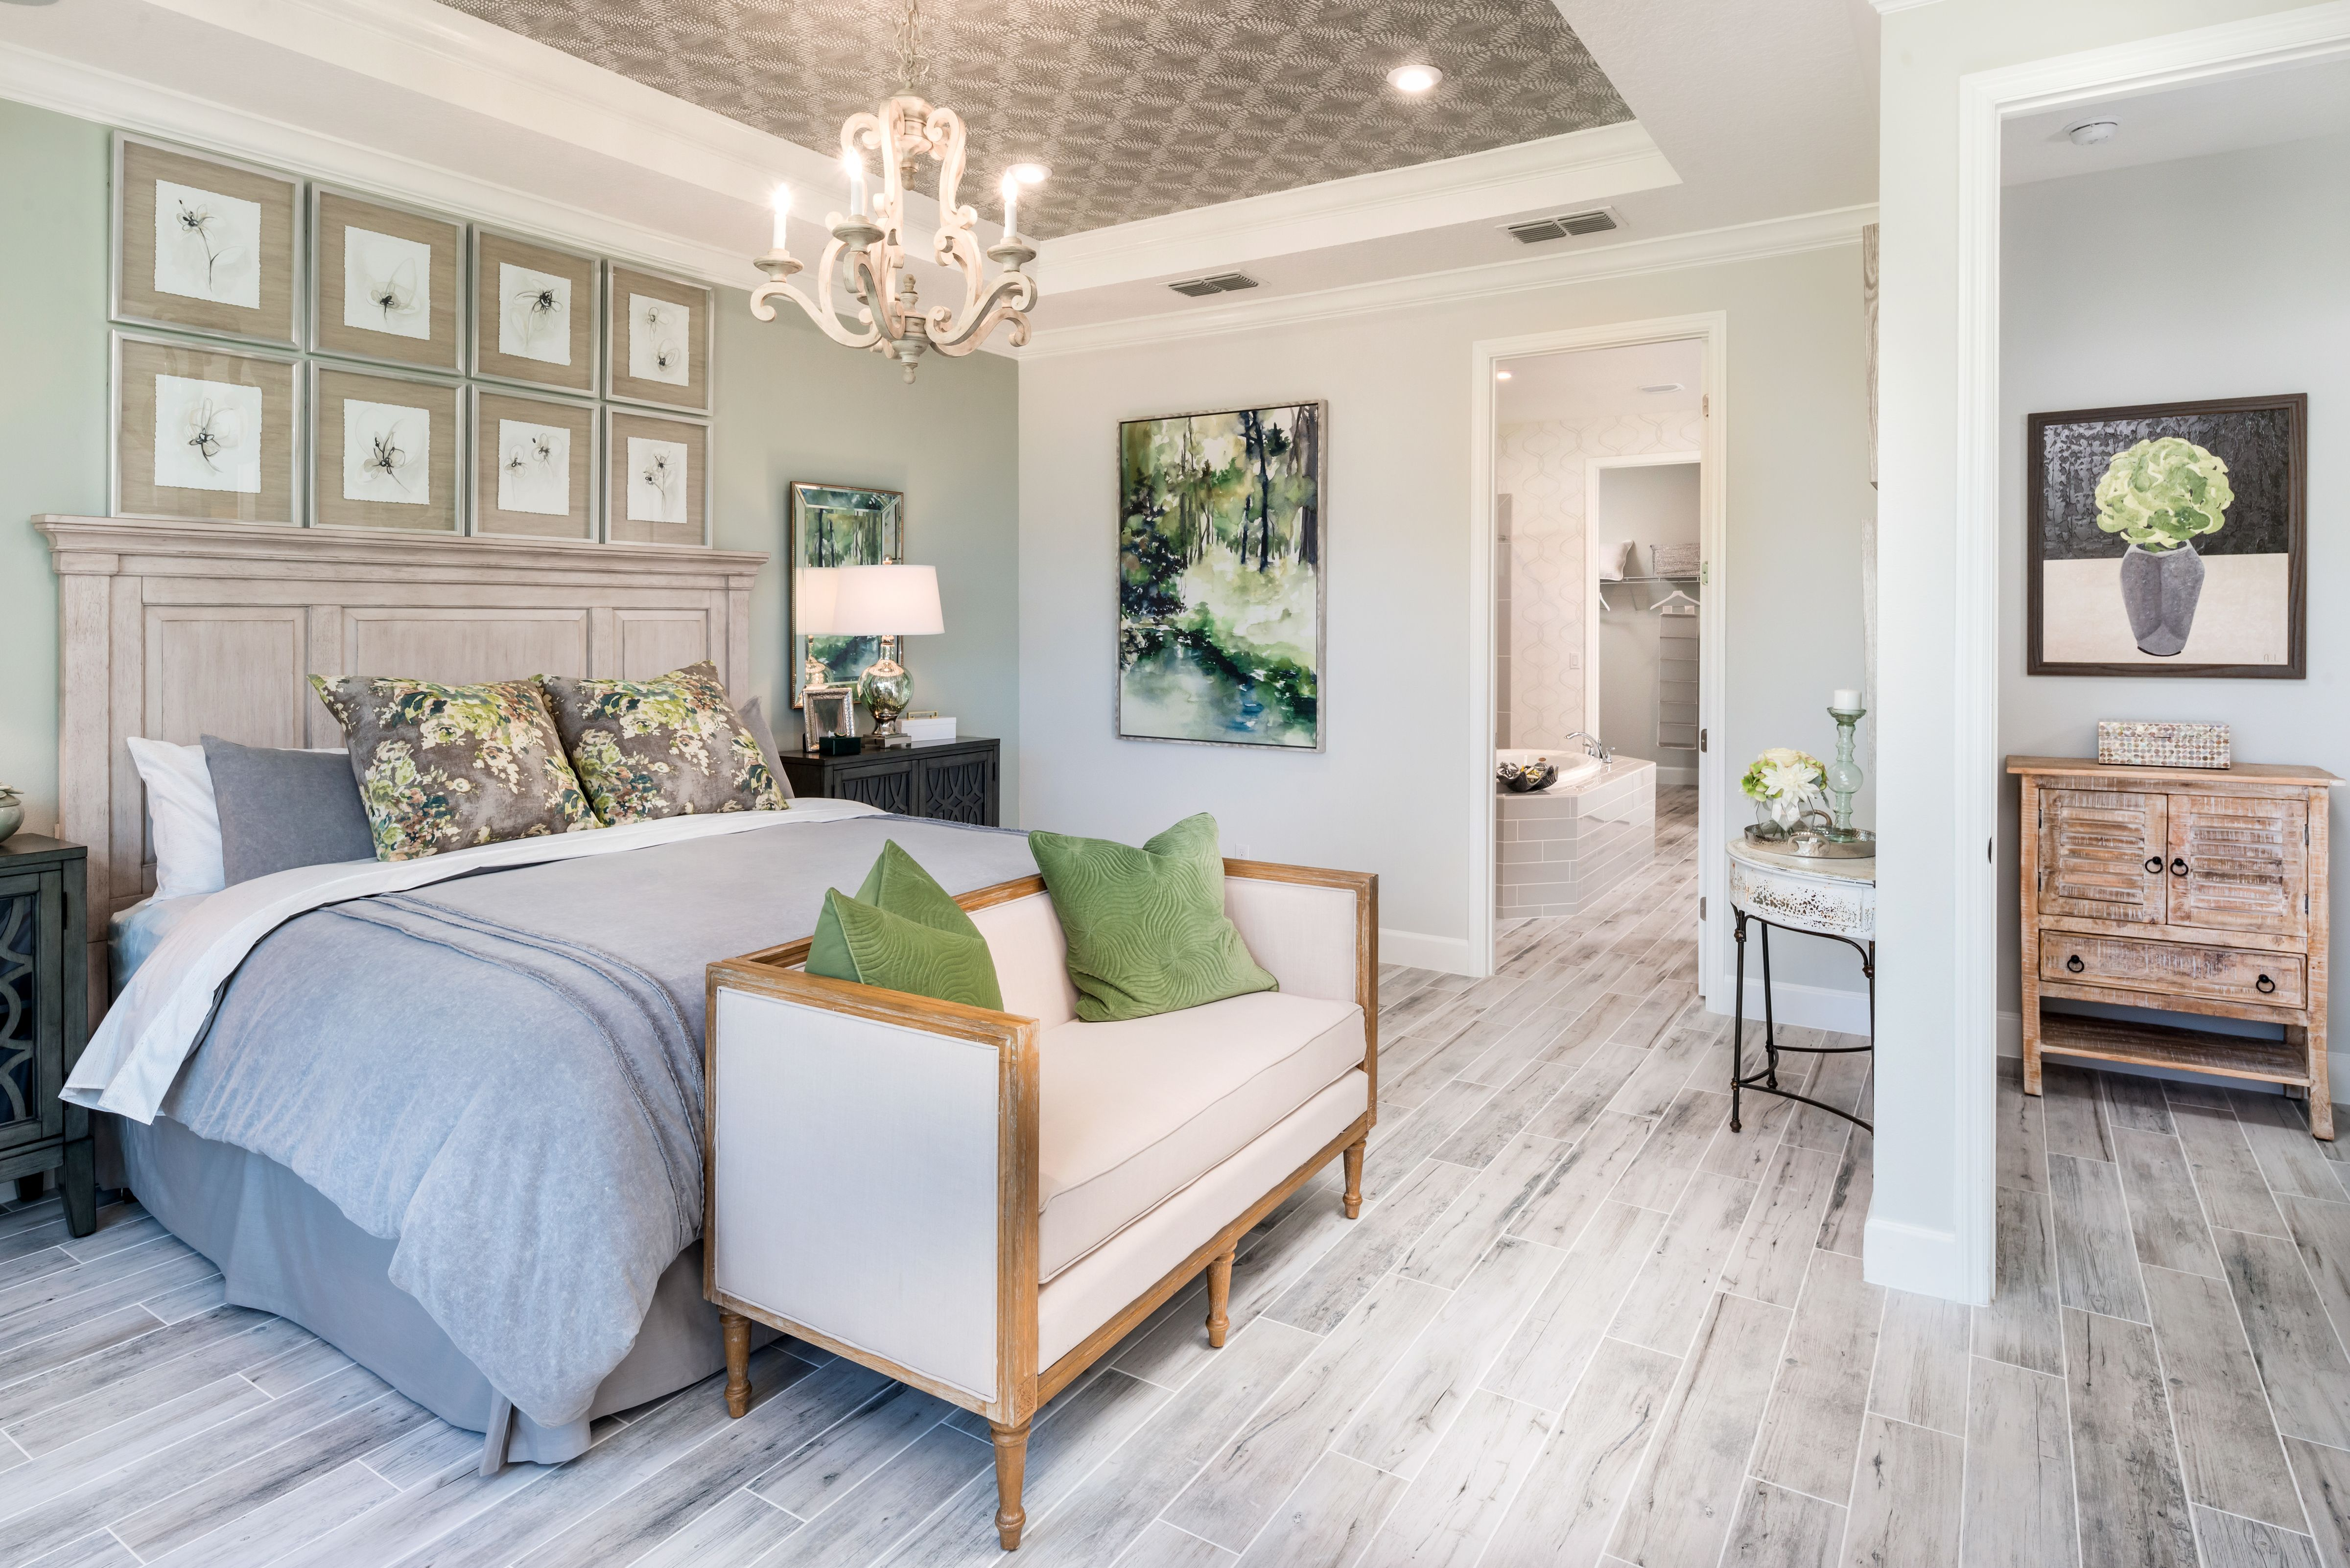 Bedroom featured in the Amelia By Taylor Morrison in Sarasota-Bradenton, FL